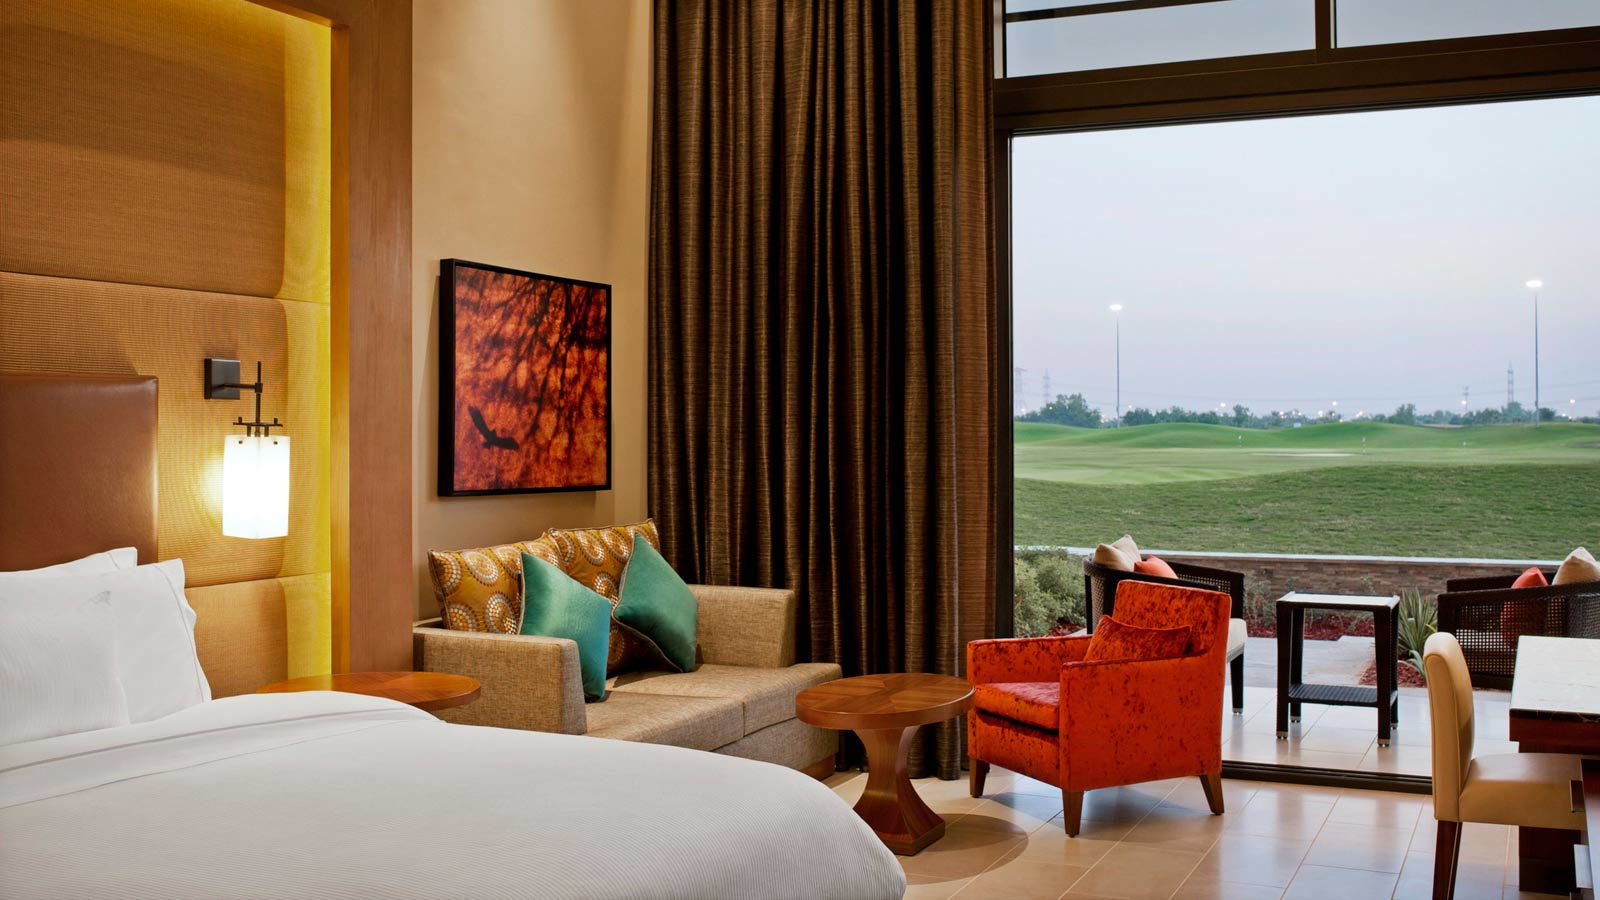 Deluxe room i westin abu dhabi golf resort i hotels abu dhabi for Abu dhabi country club salon